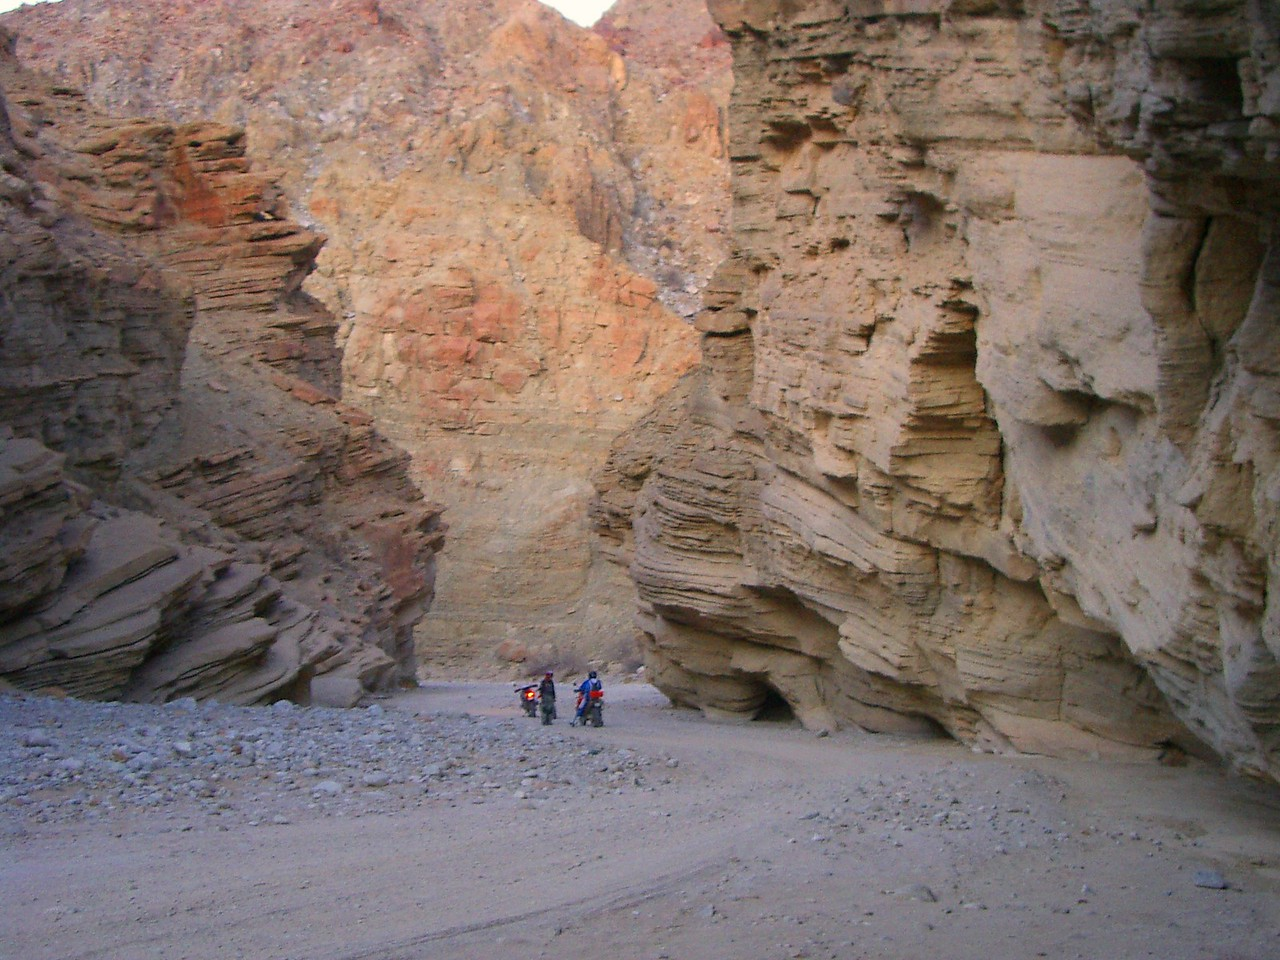 One of the beautiful canyons we rode through.